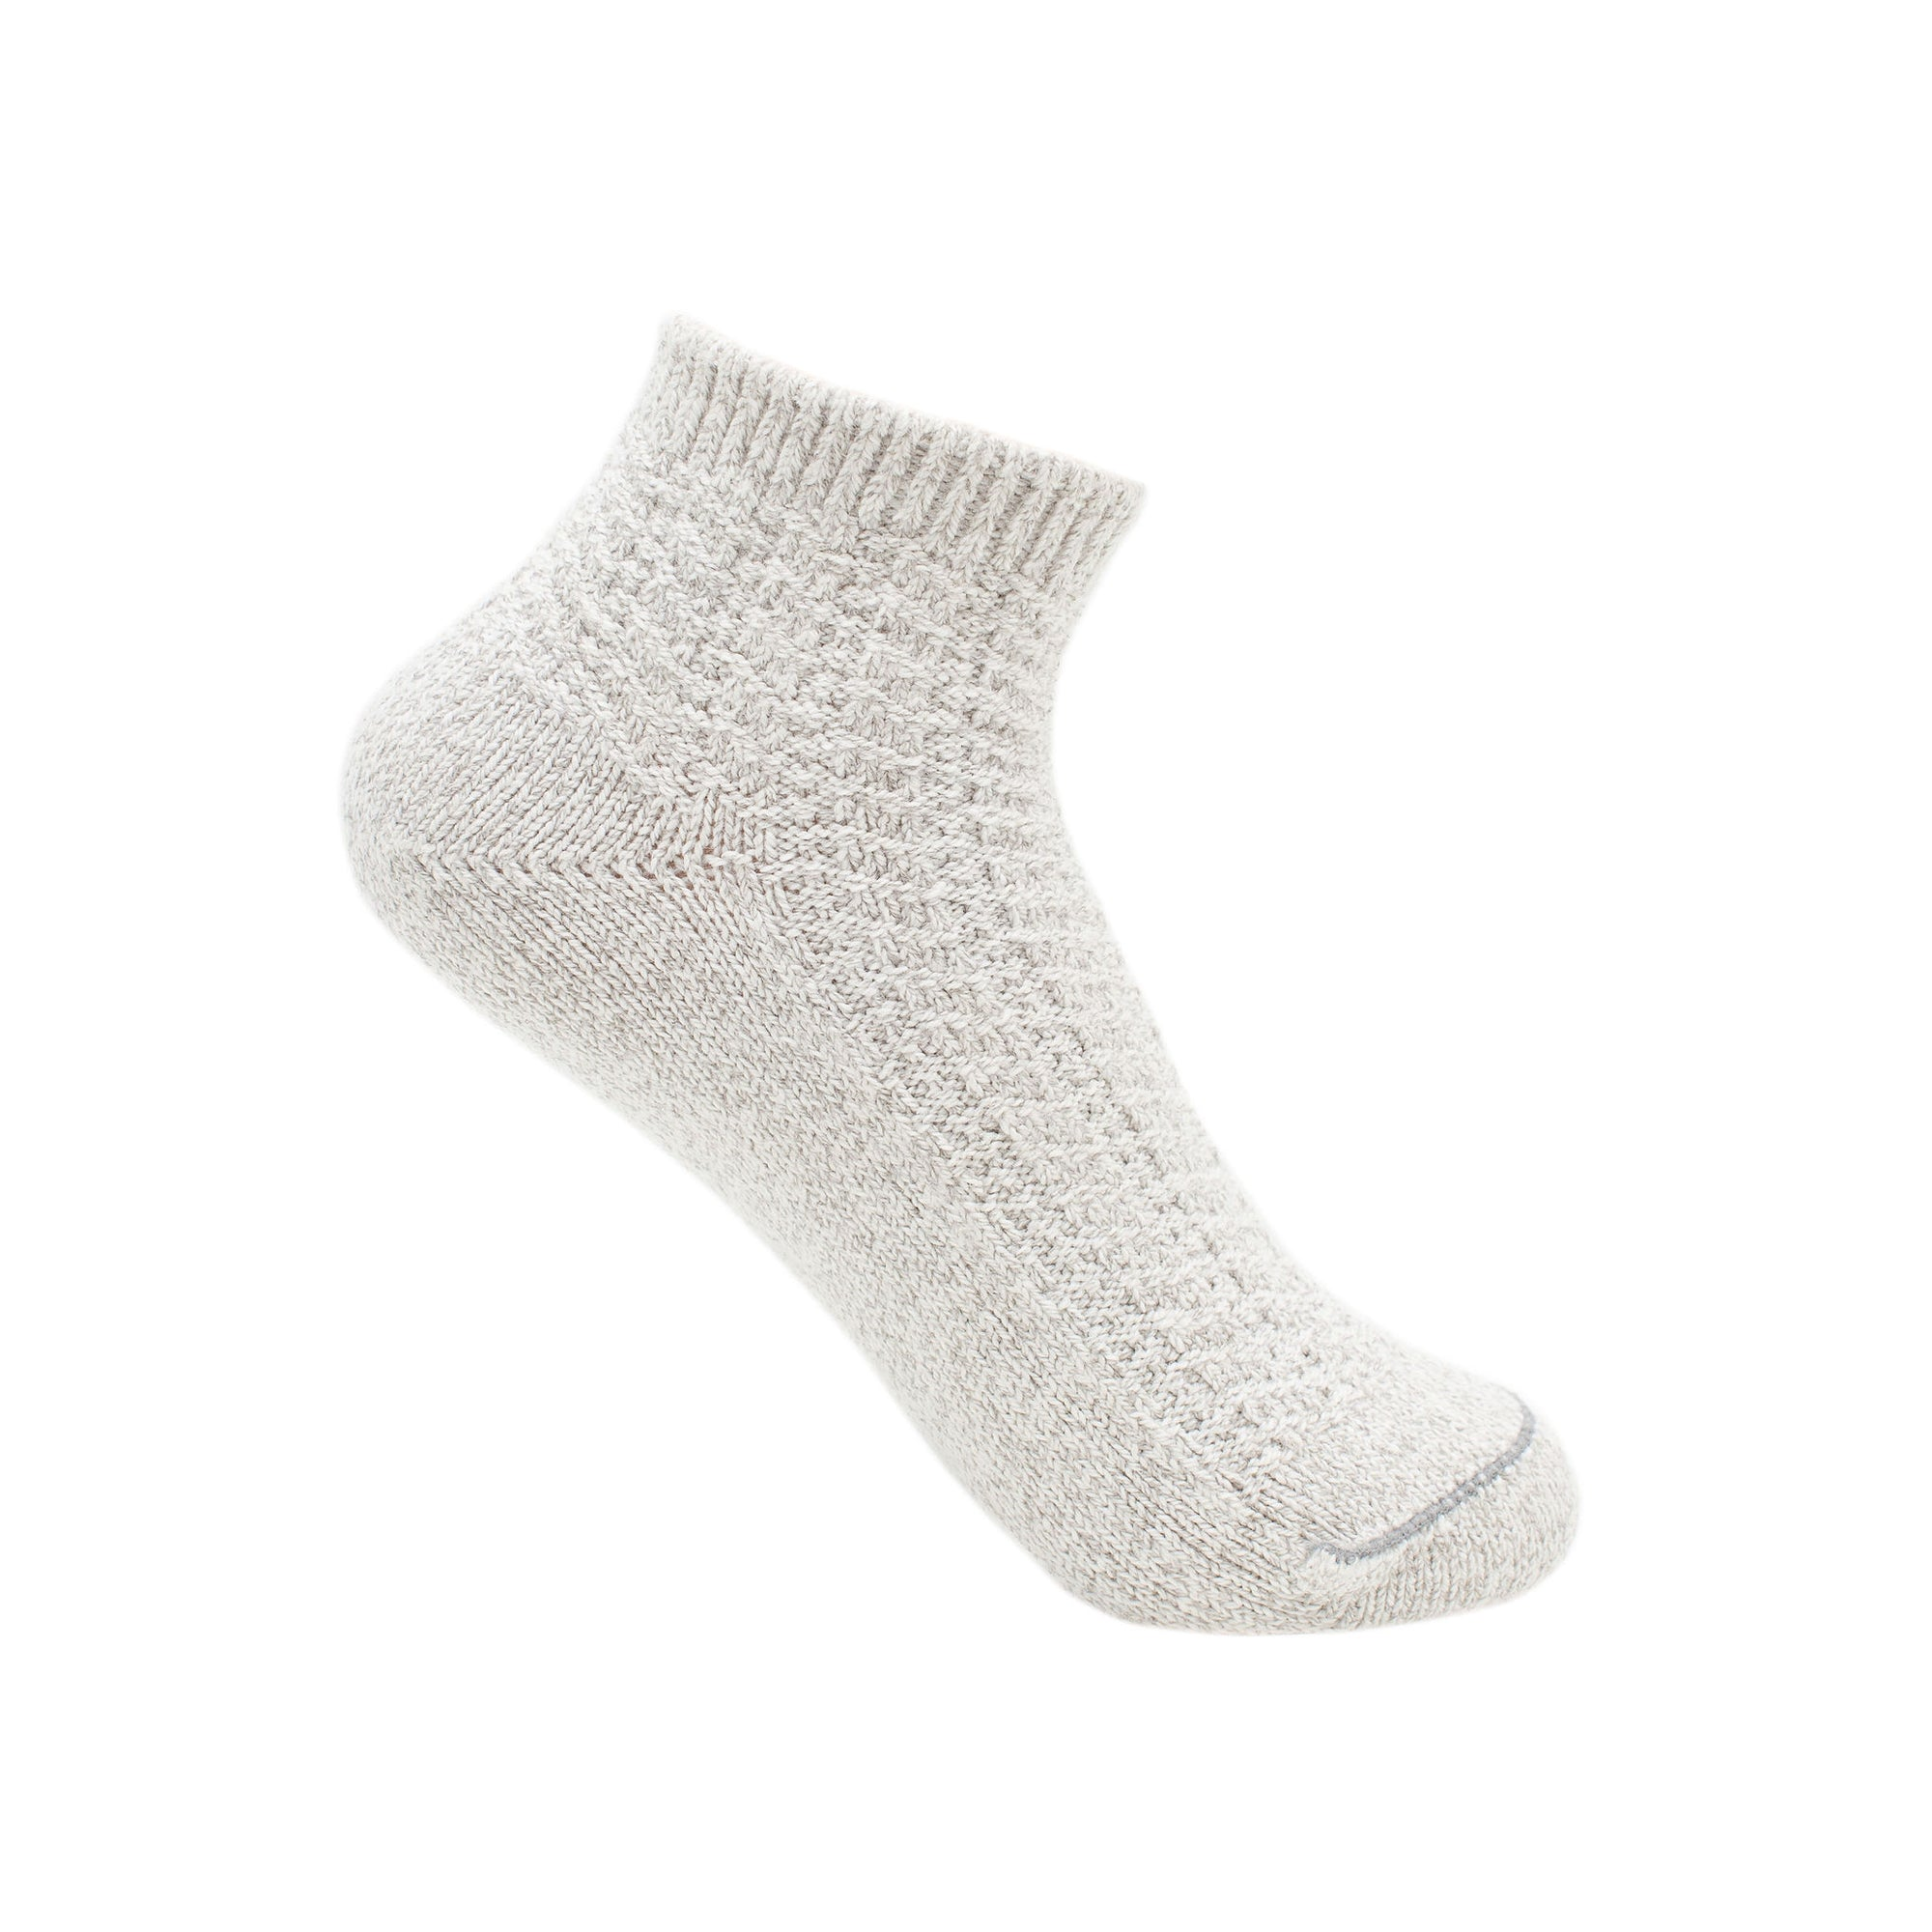 Plush Footie Sock - Natural